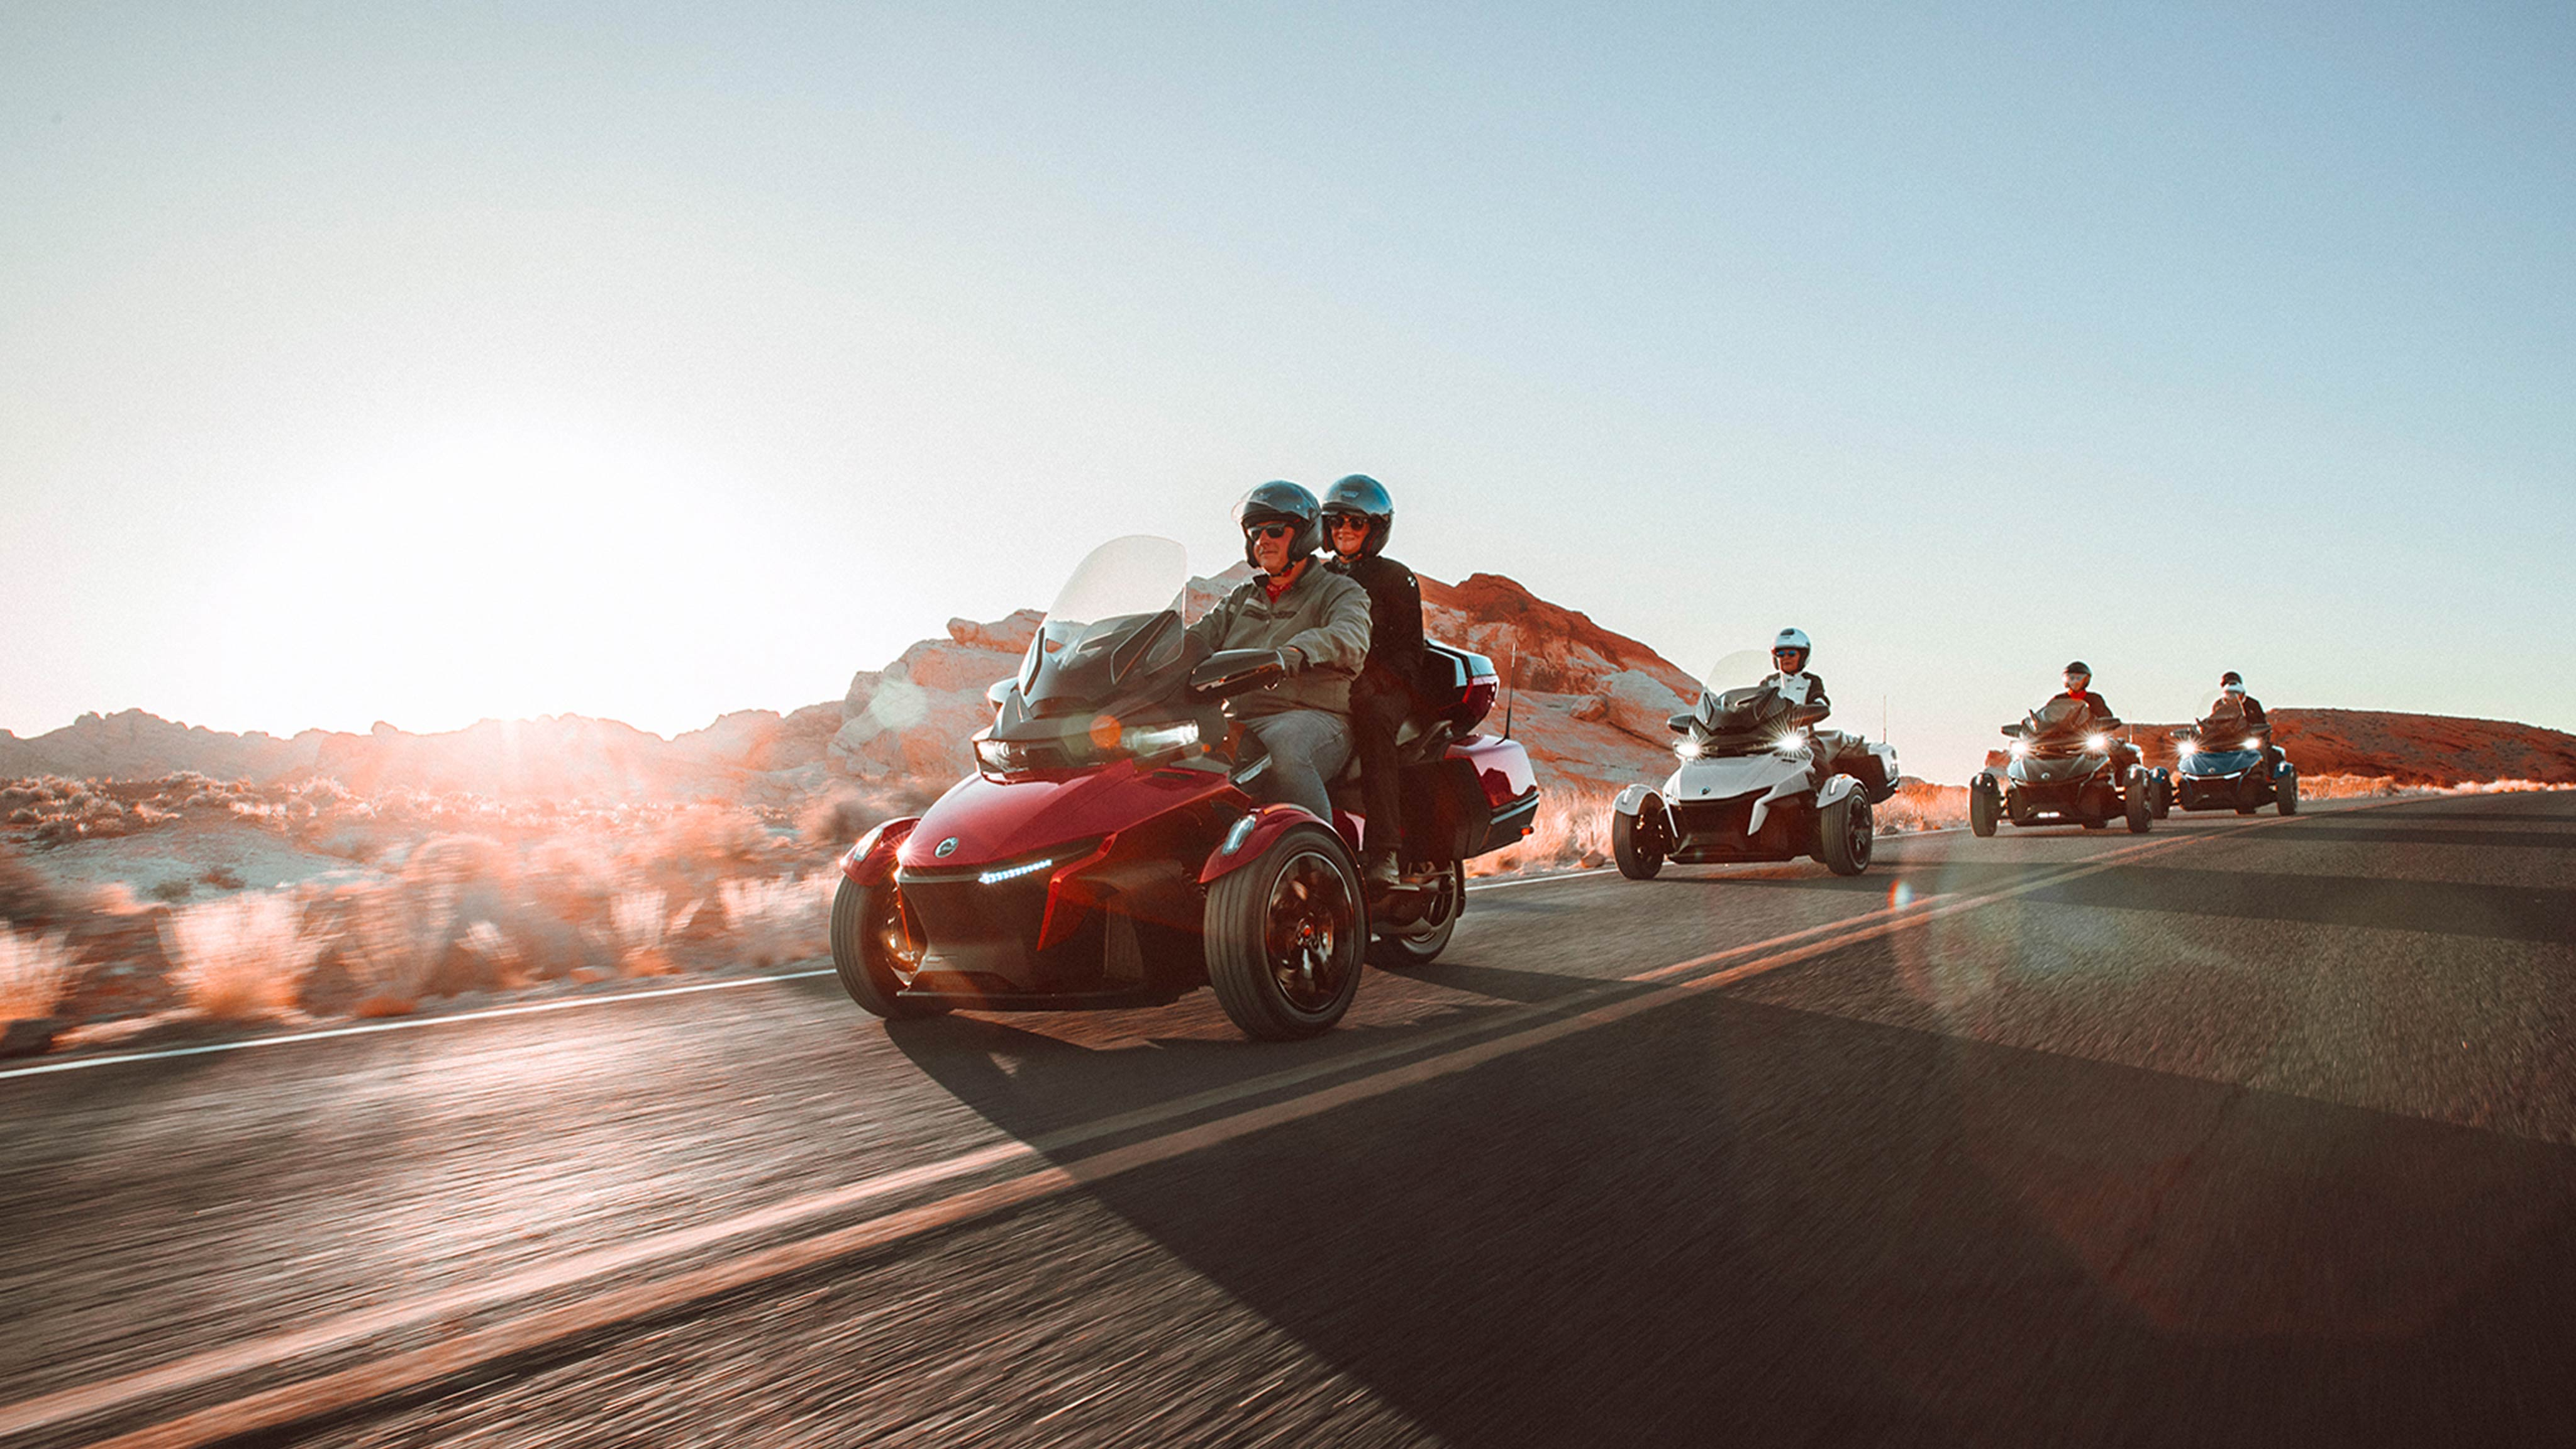 Group of people riding four Can-Am Ryker vehicles on a scenic road